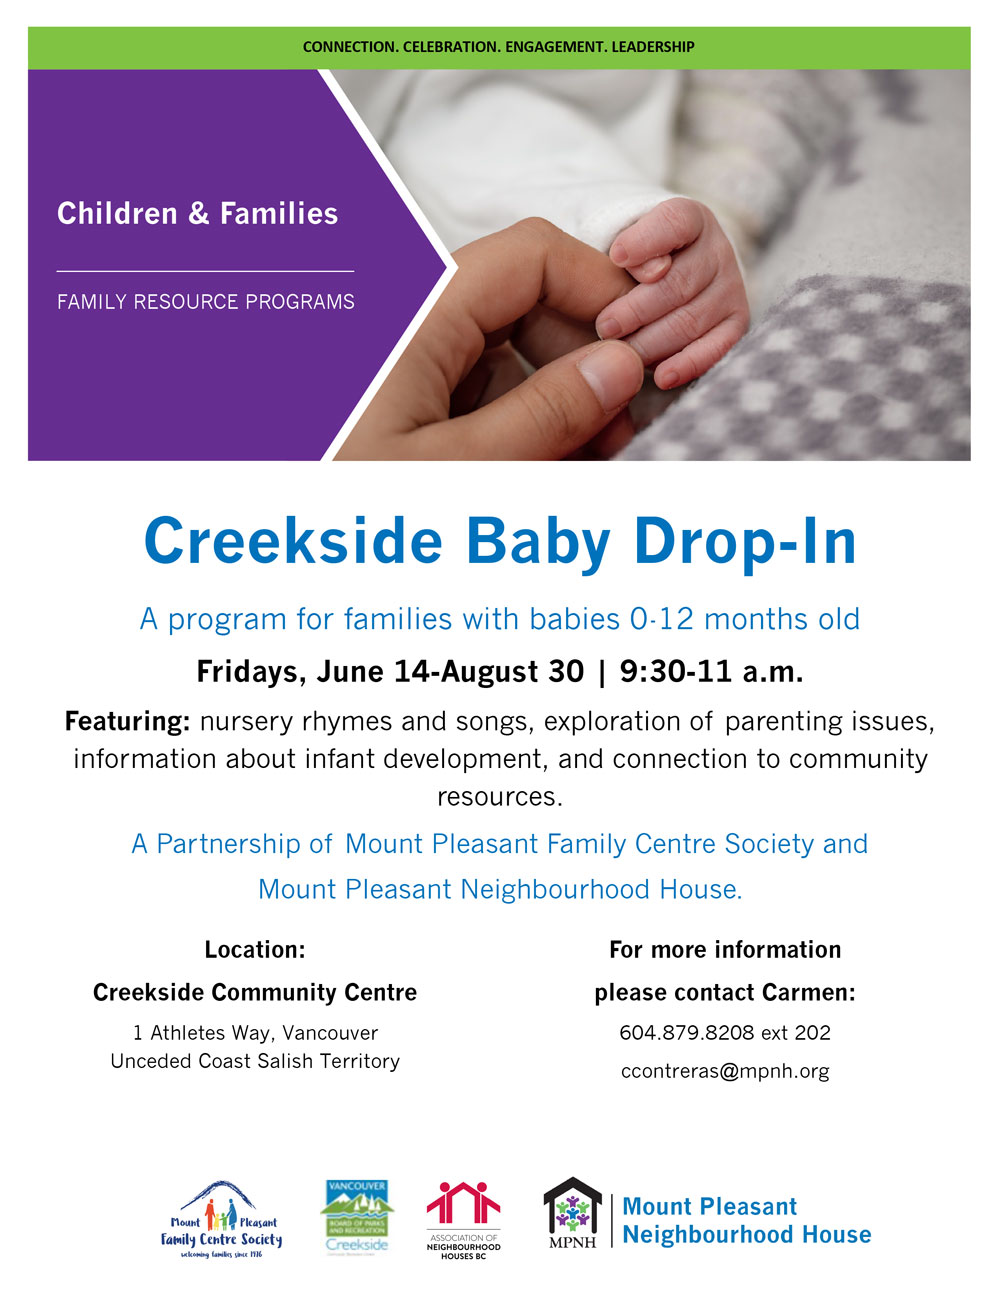 An image of the poster with program details, featuring a photo of an adult's hand holding a baby's hand